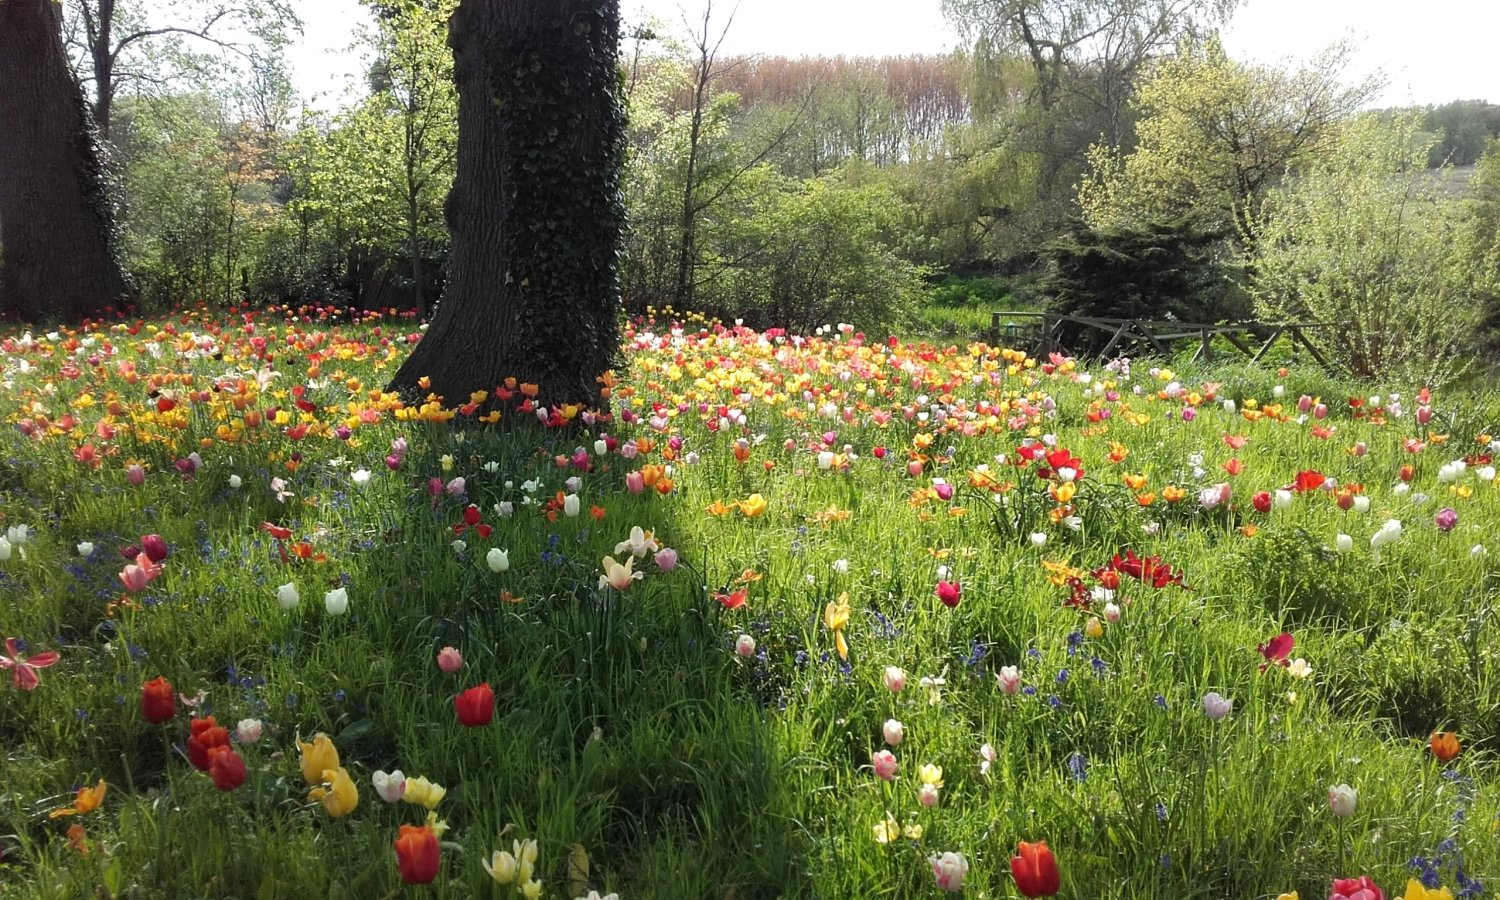 Meadow of tulips at Dunsborough Park, Surrey